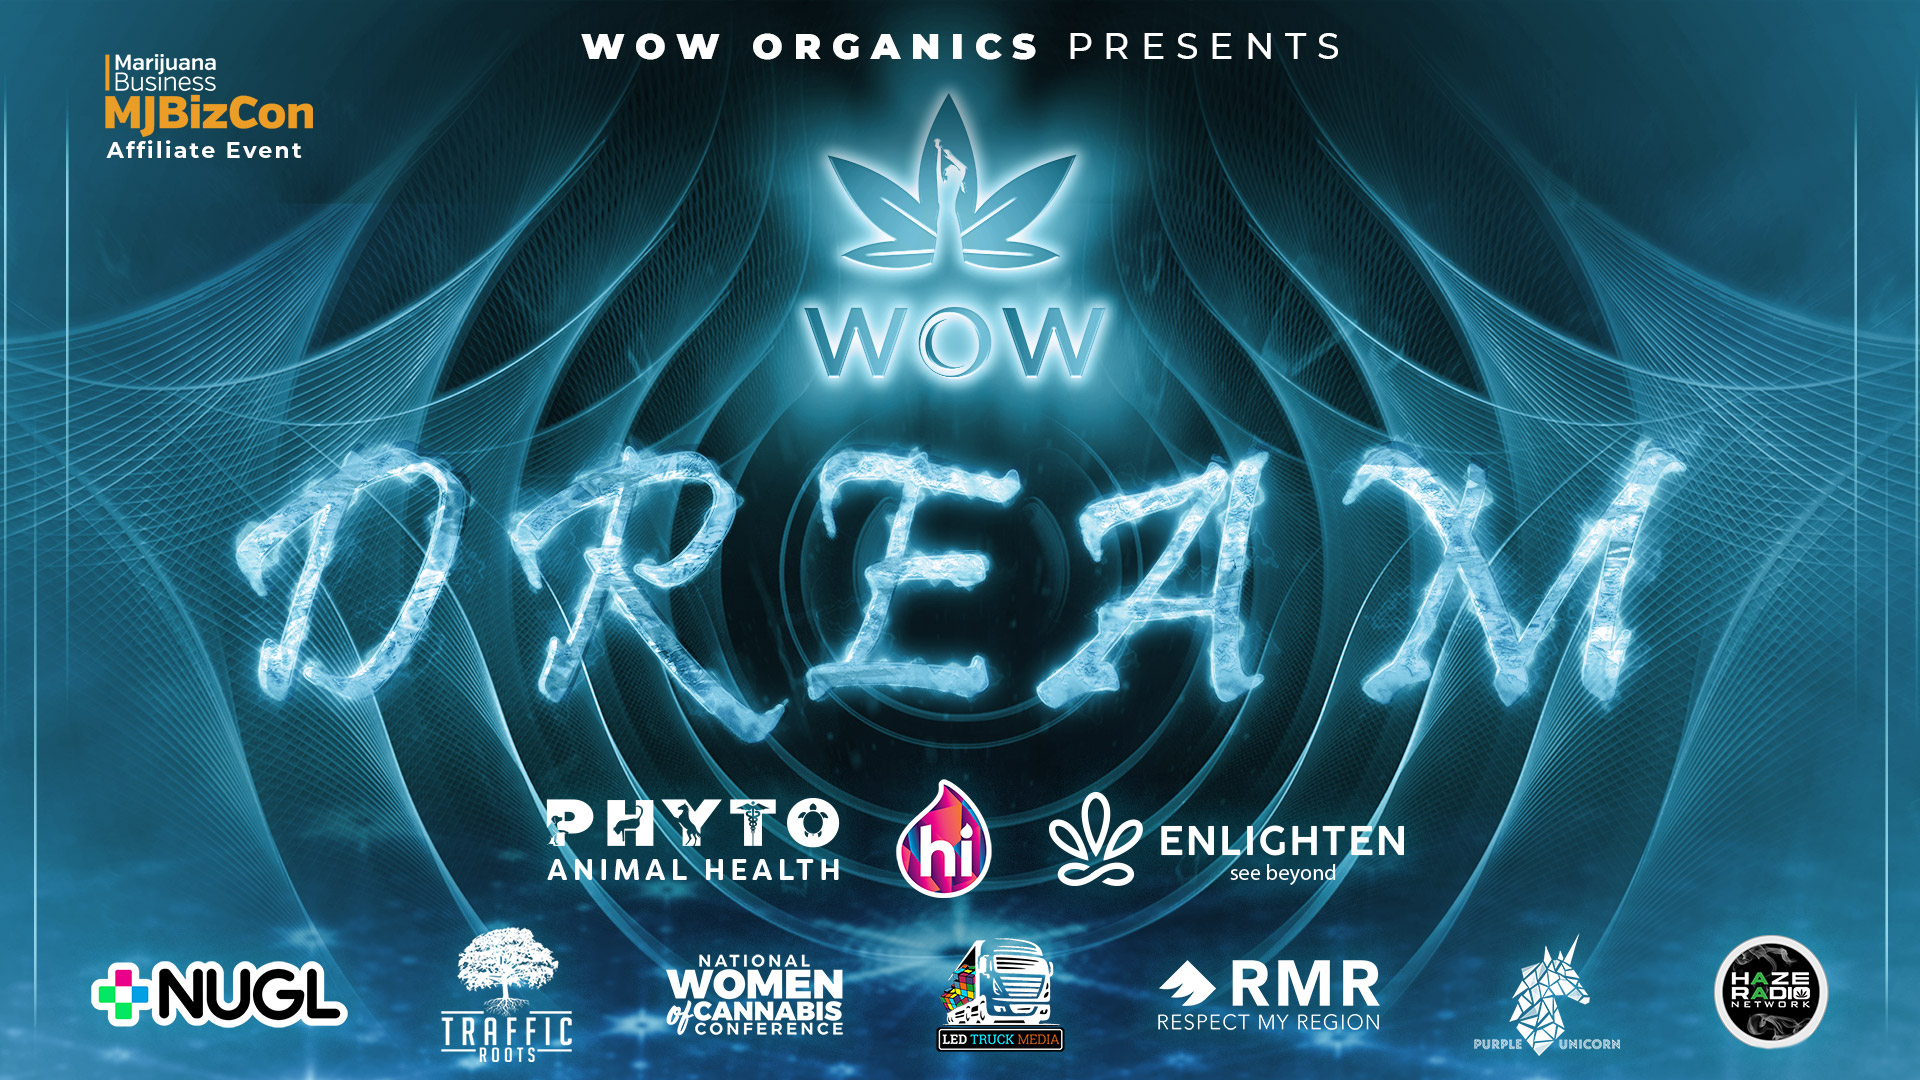 DREAM - WOW Organics Launch Party